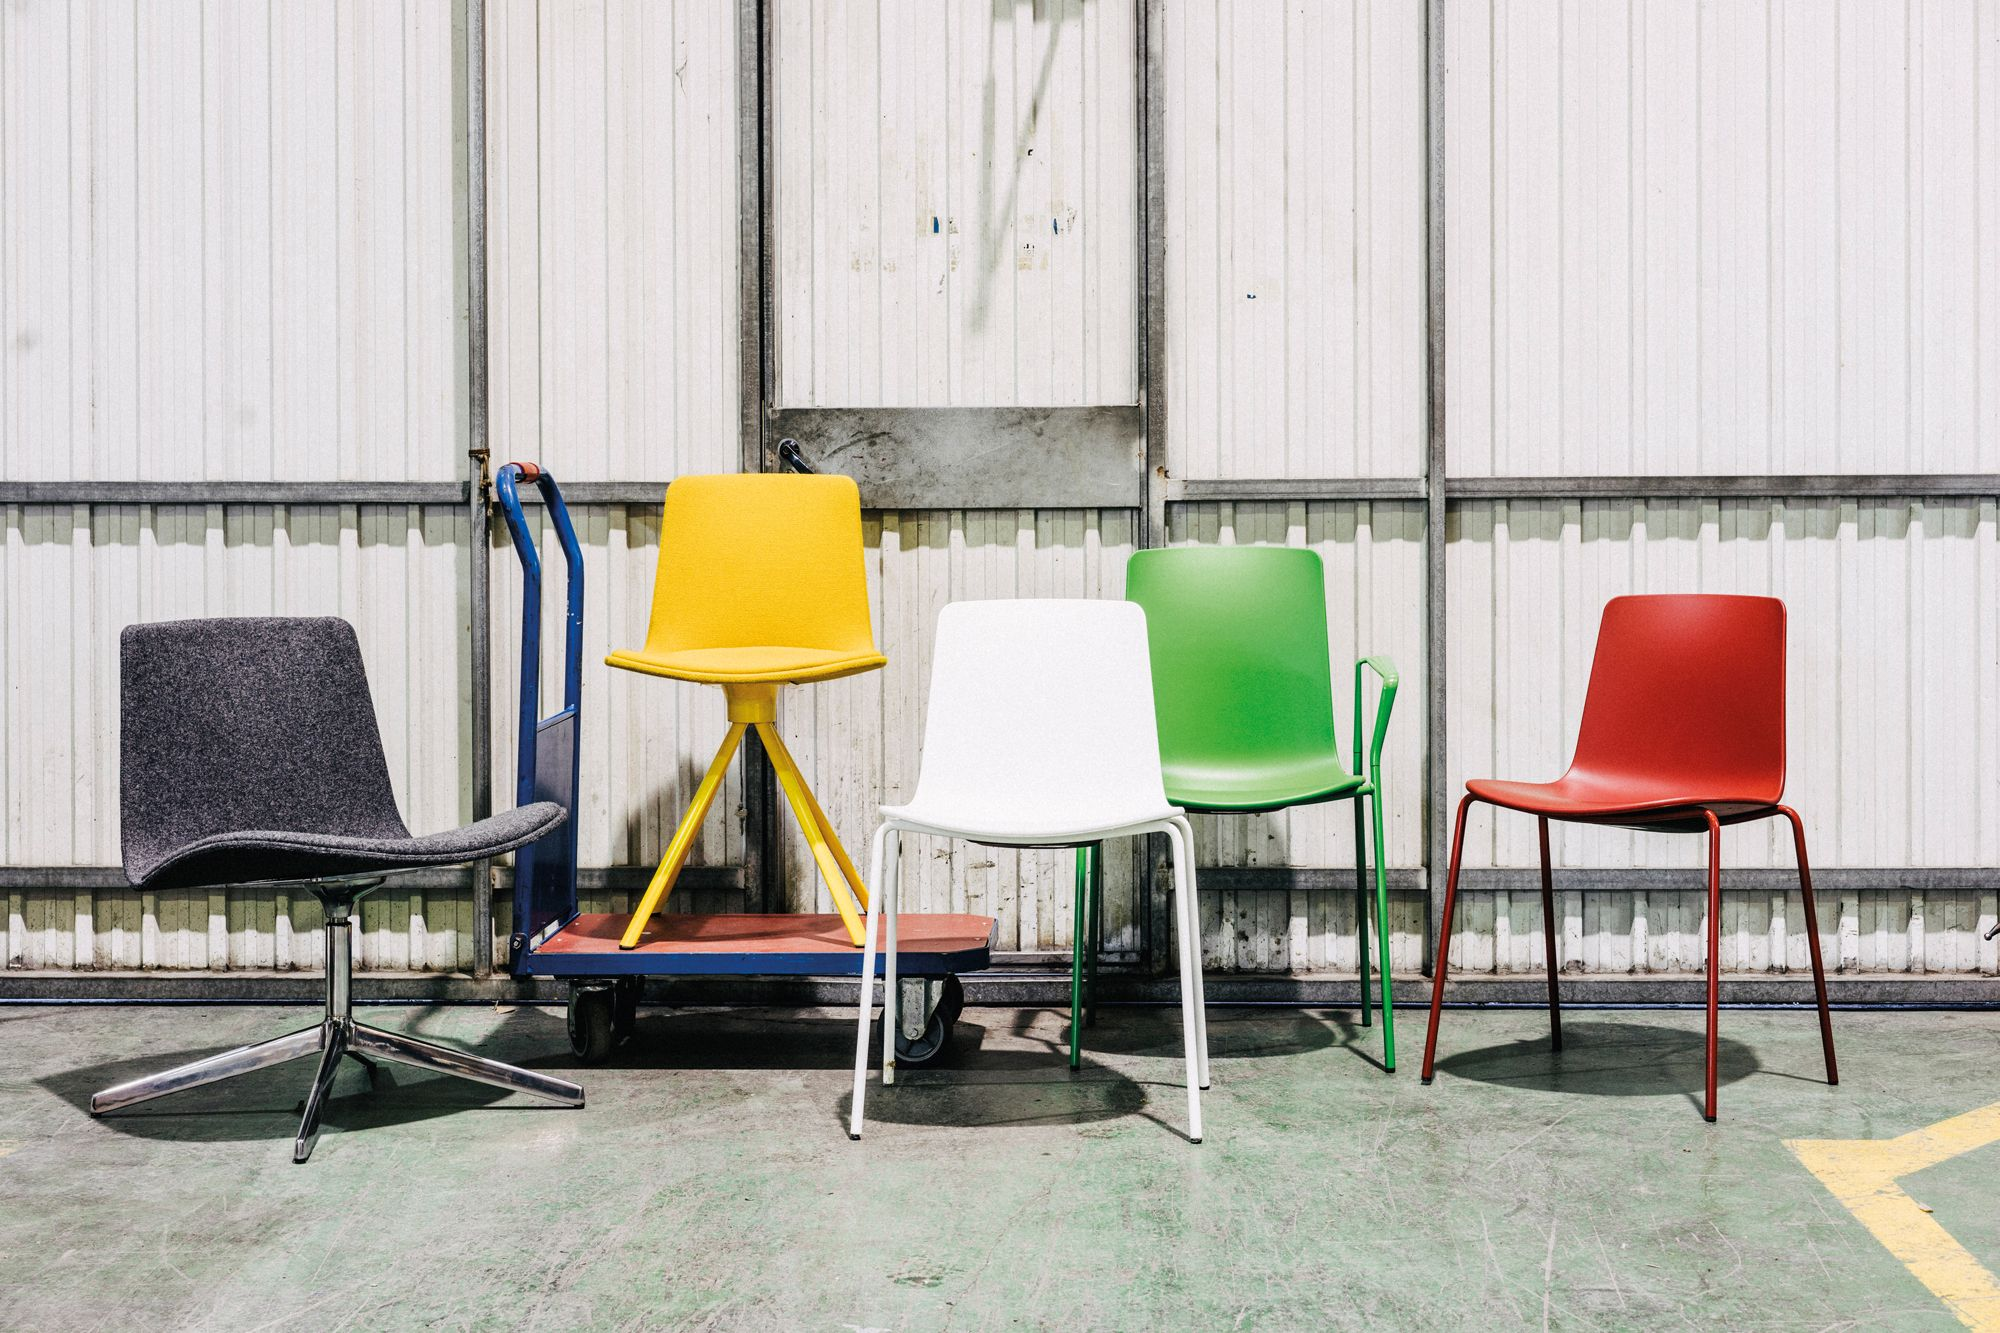 Lottus chairs in red, yellow, green and white and Lottus